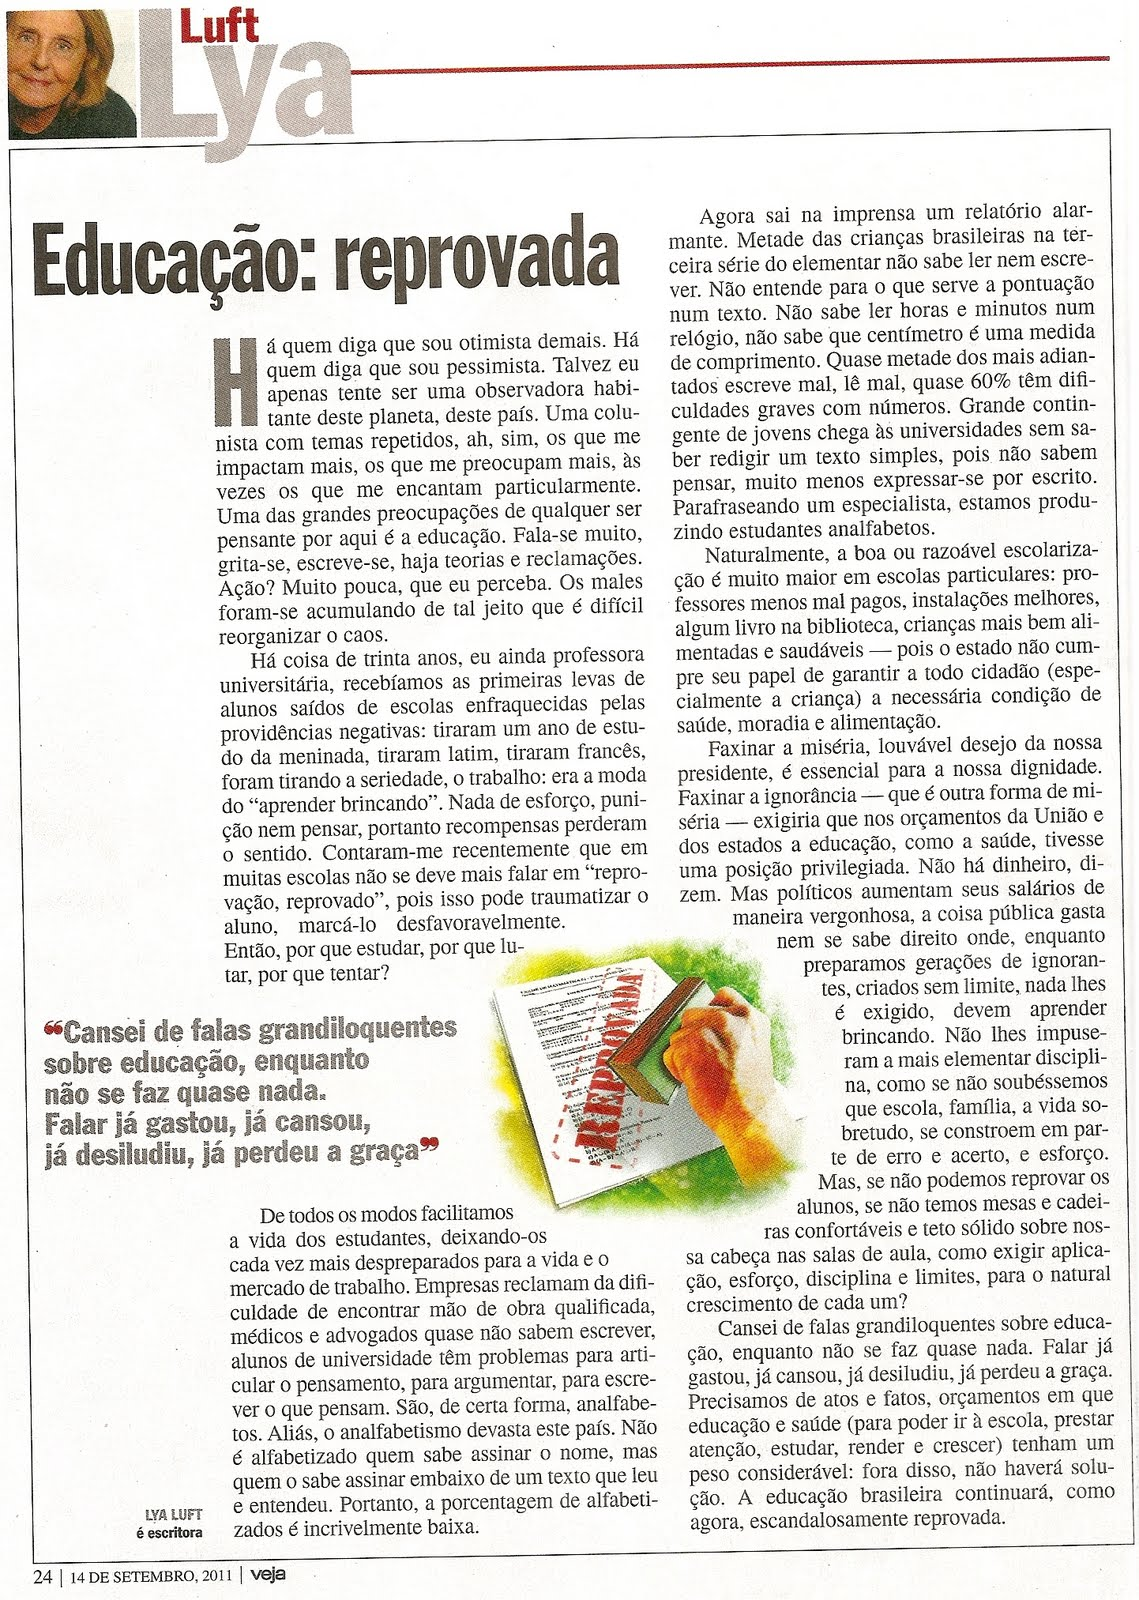 PERCA TEMPO   O BLOG DO MURILO  LYA LUFT   Educa    O  Reprovada